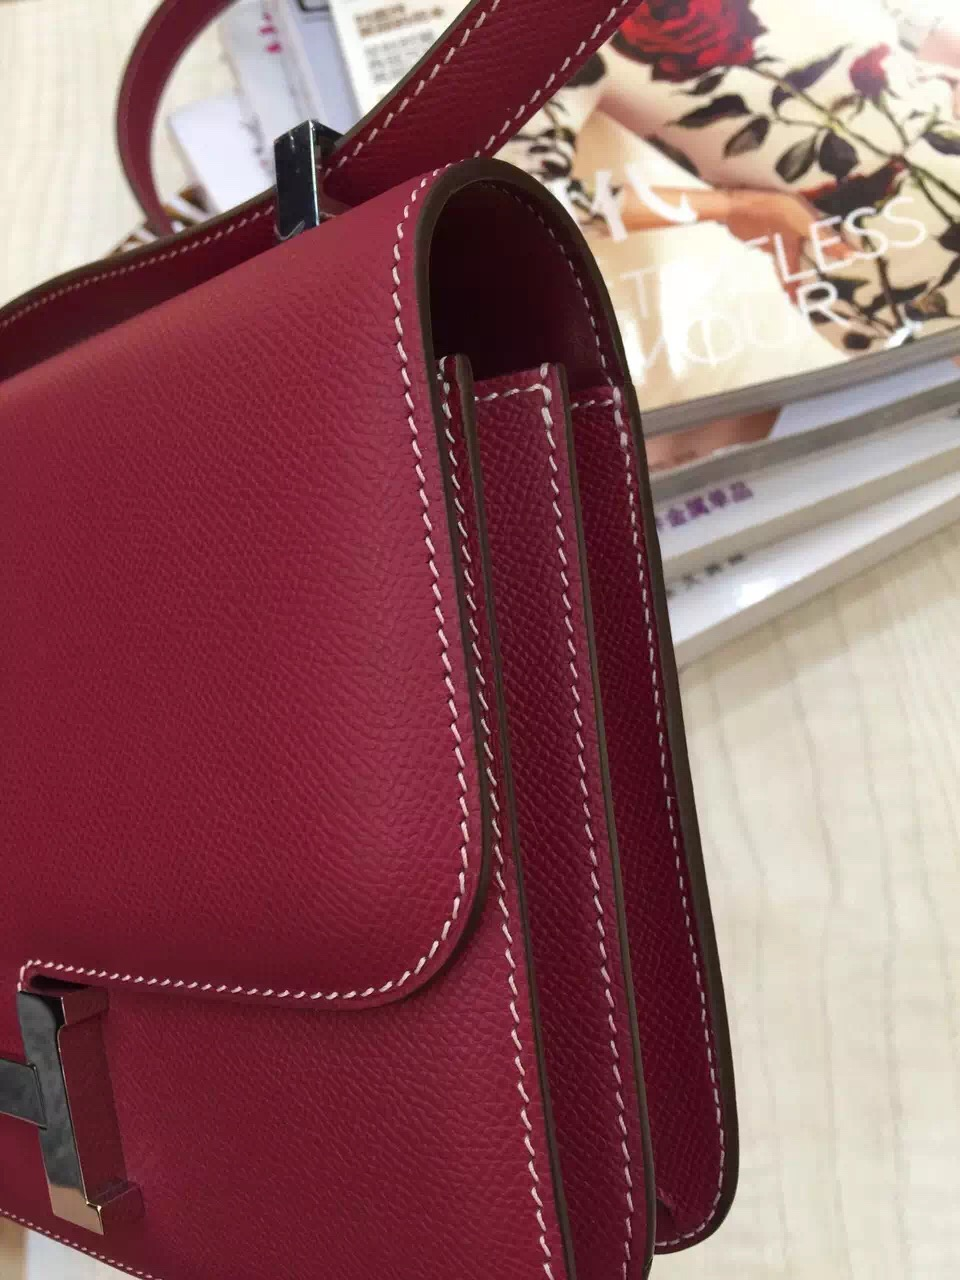 Hermes Burgundy Epsom Leather Constance Bag 24CM Hot Ladies' Shoulder Bag